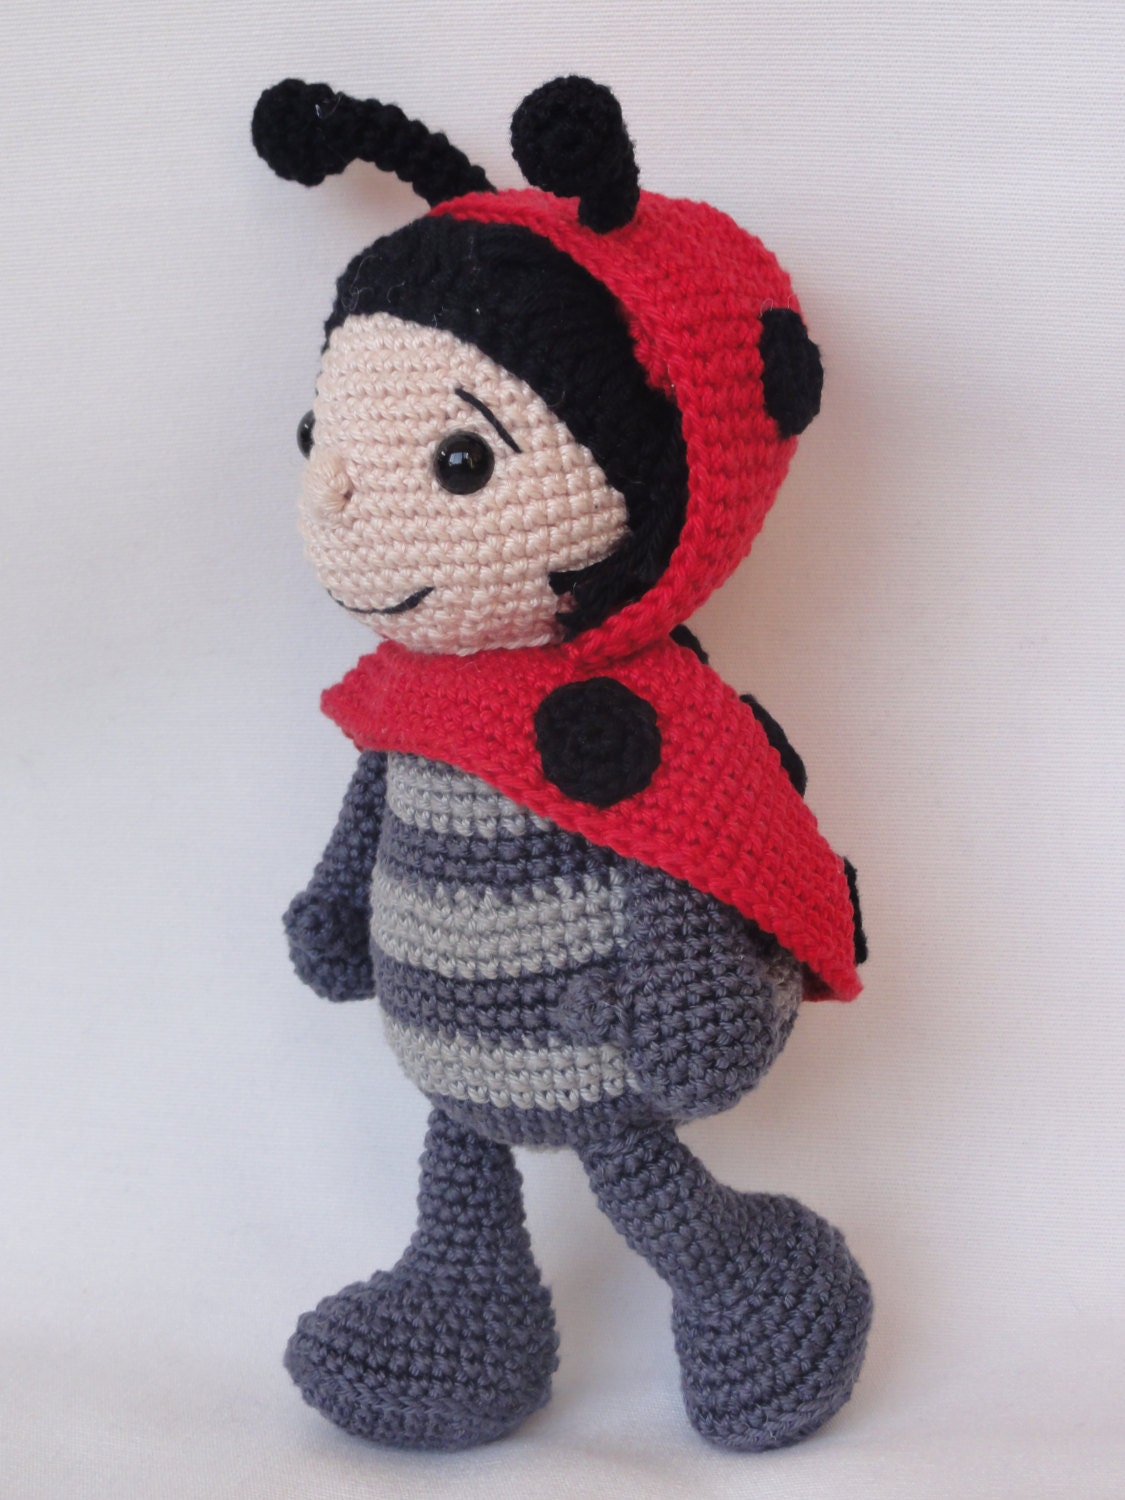 Dotty the Ladybug Amigurumi Crochet Pattern by IlDikko on Etsy